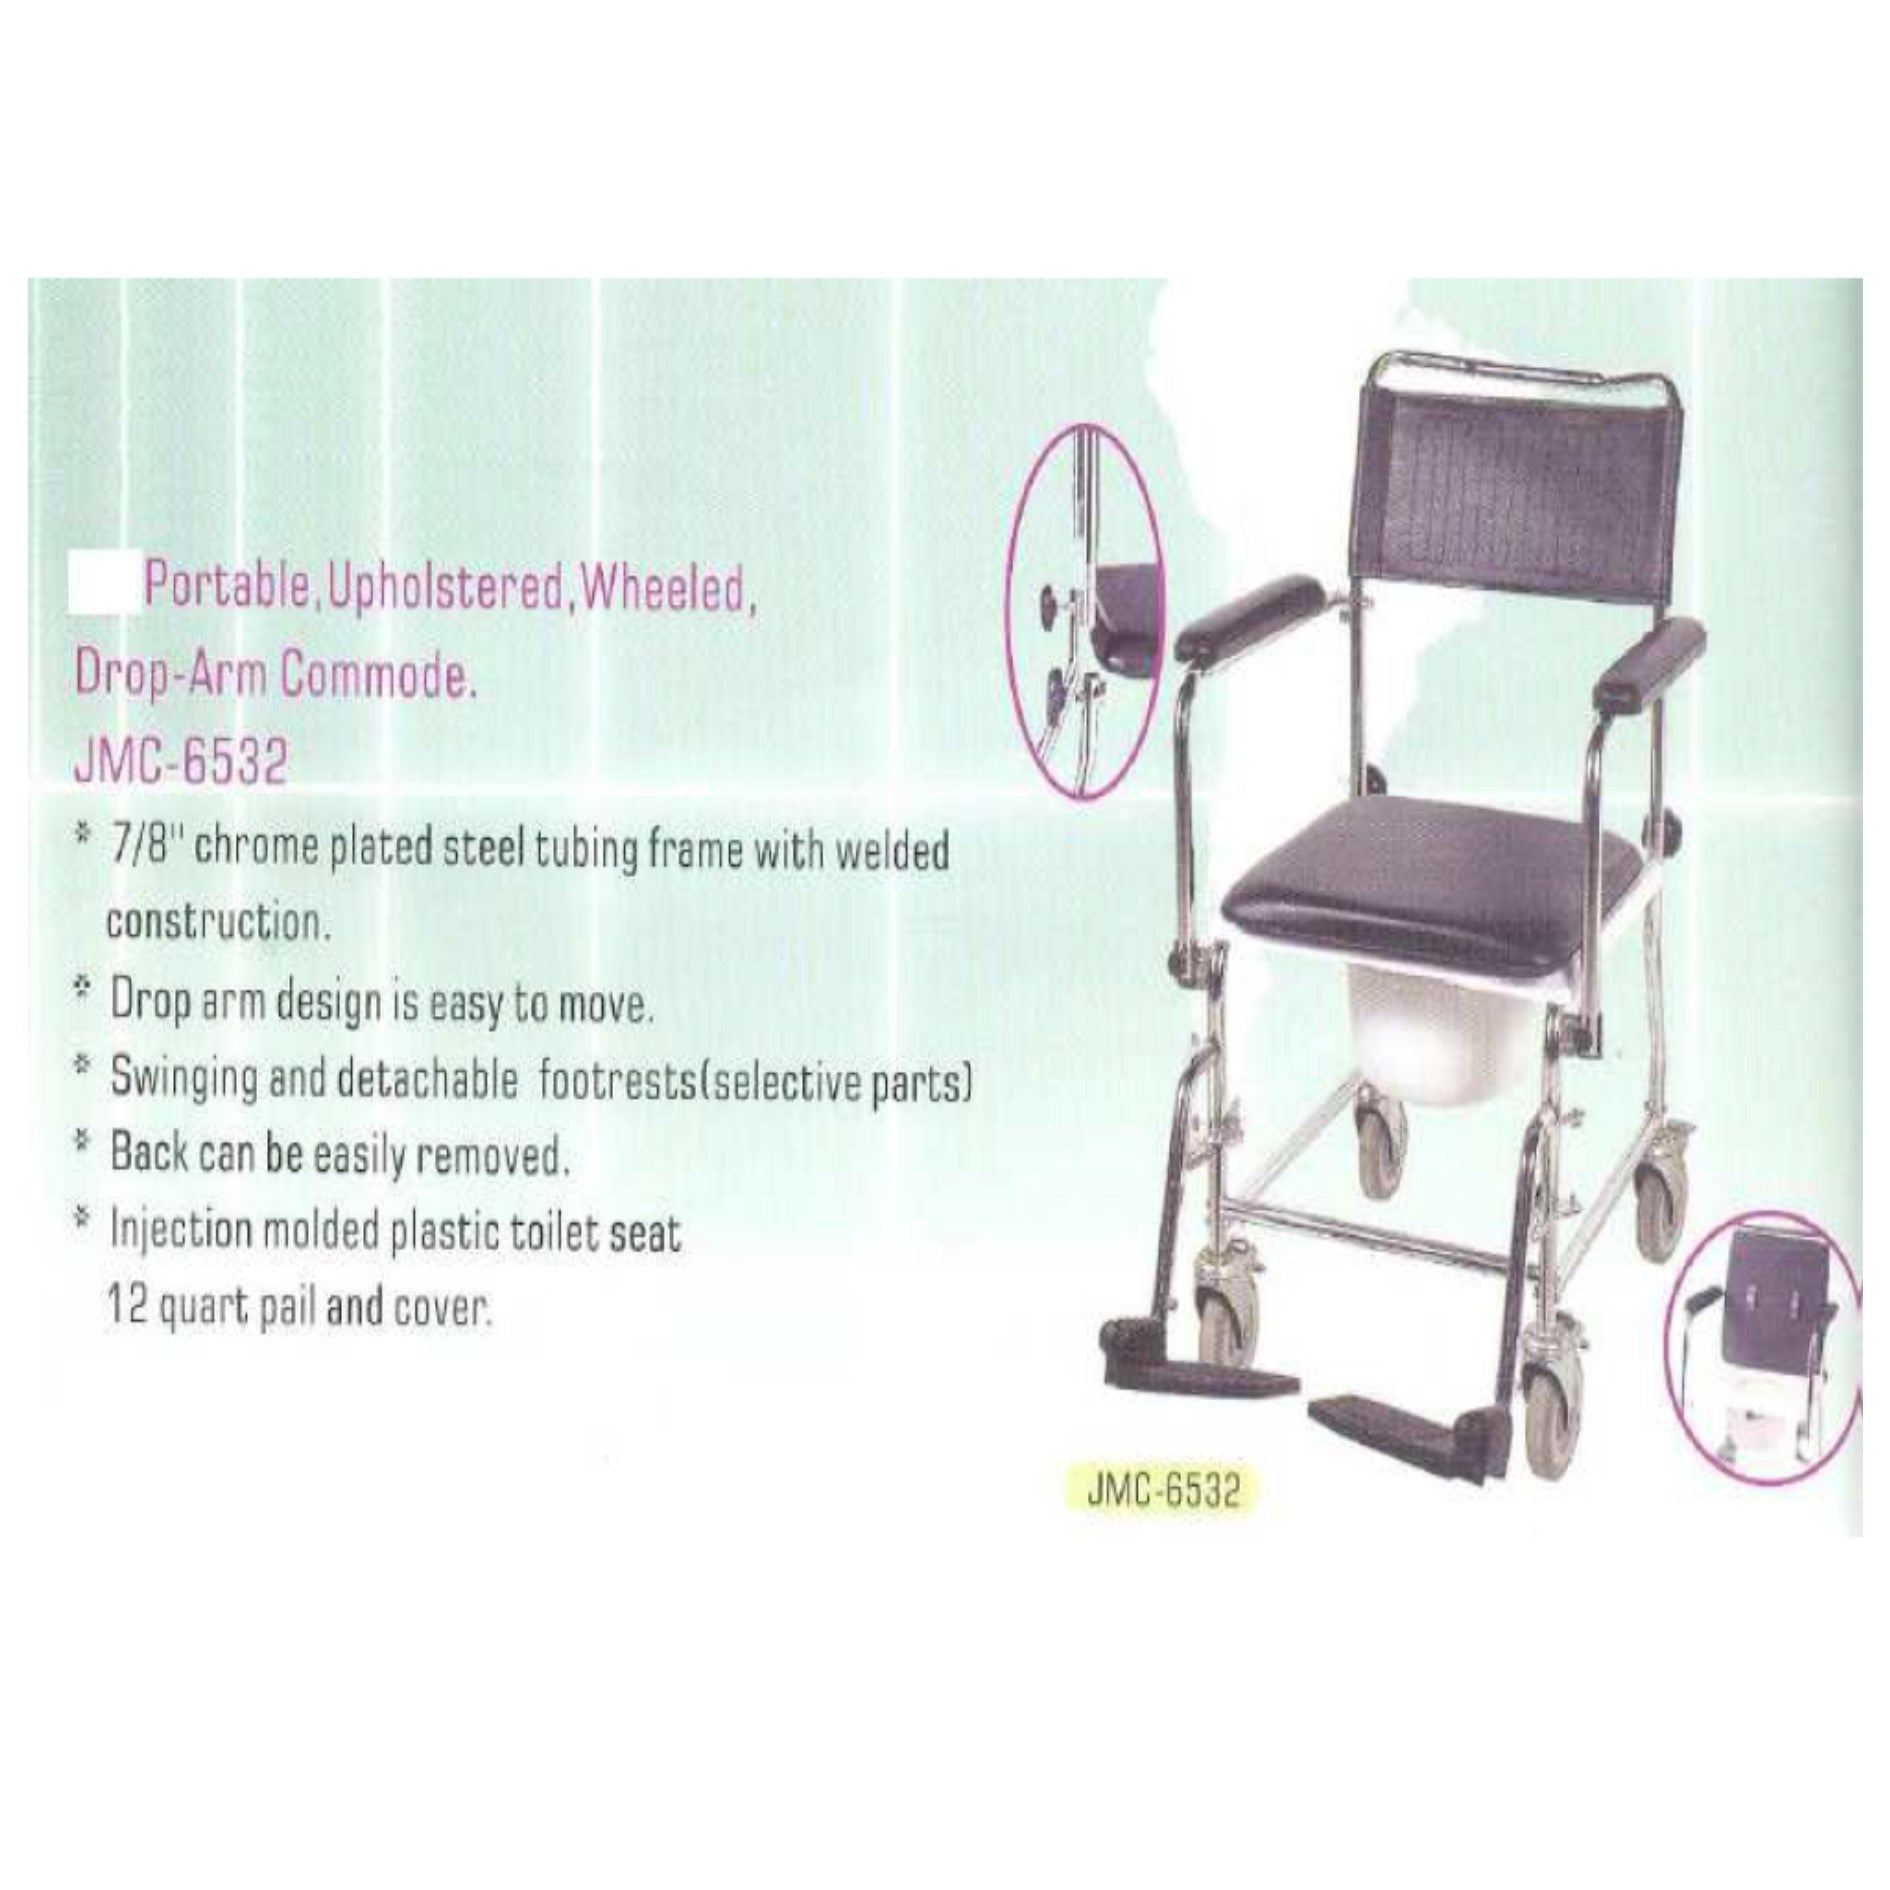 COMMODE CHAIR JMC-6532